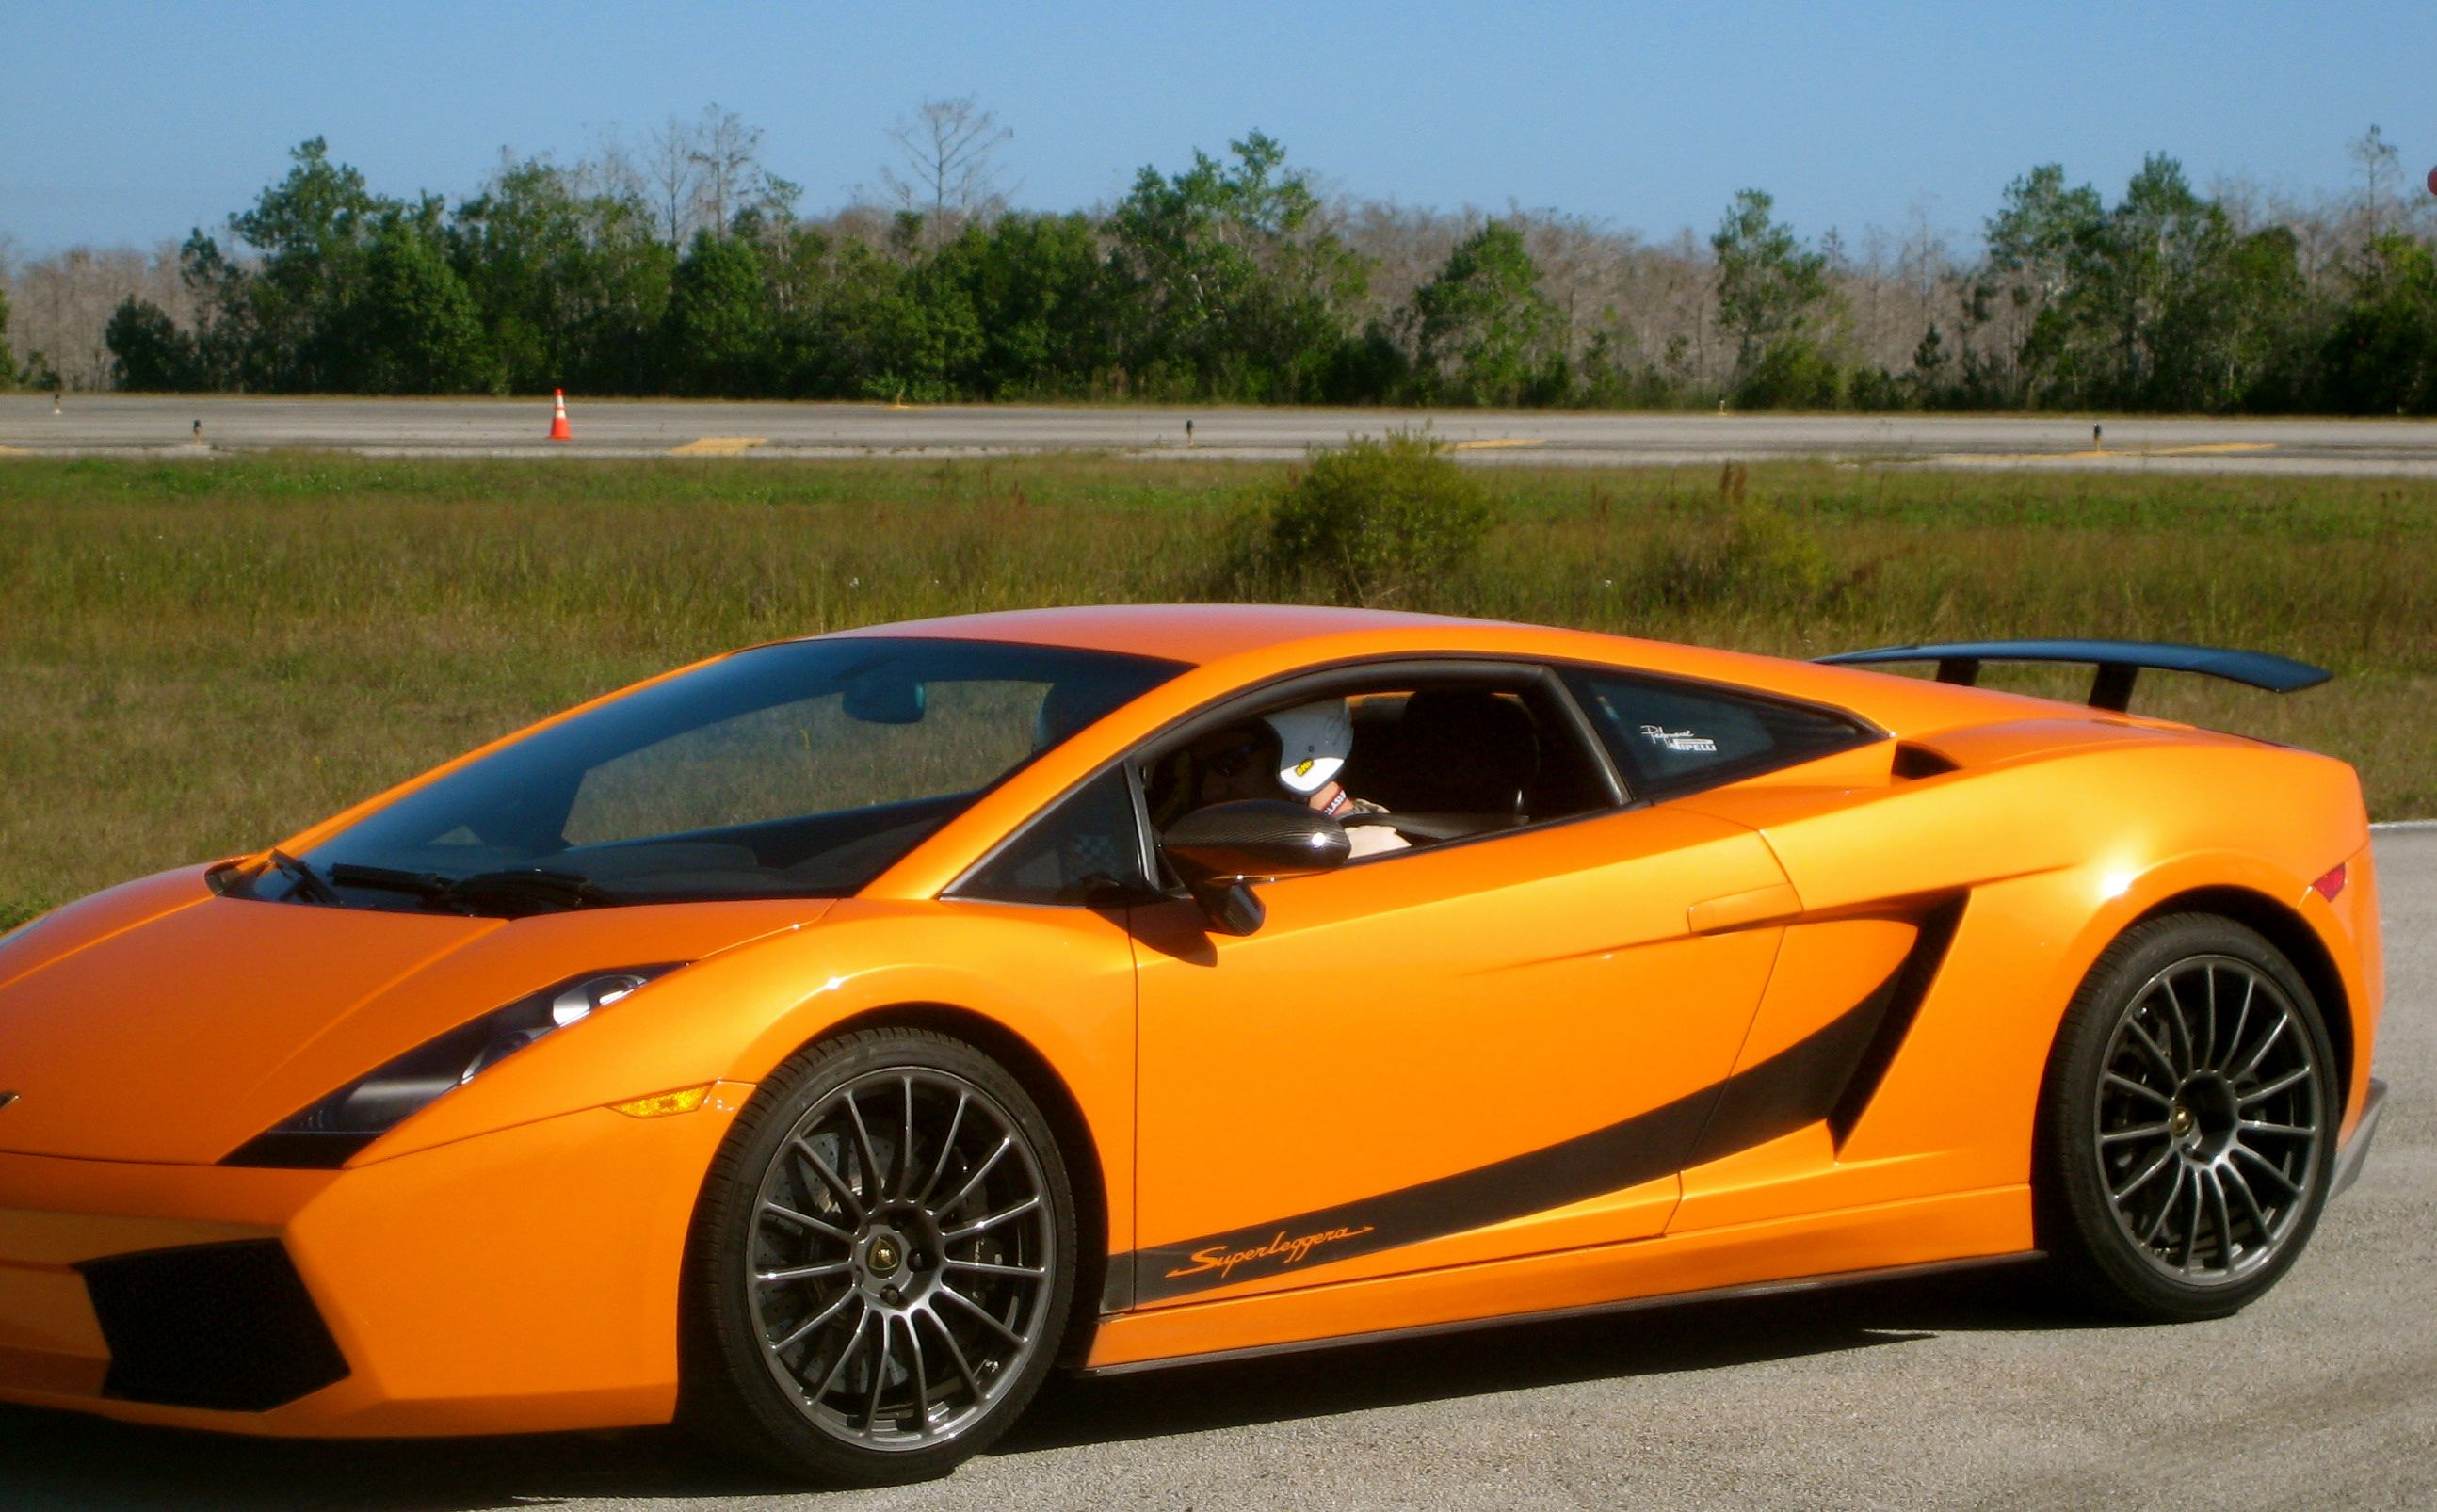 a Lamborghini at 200 mph